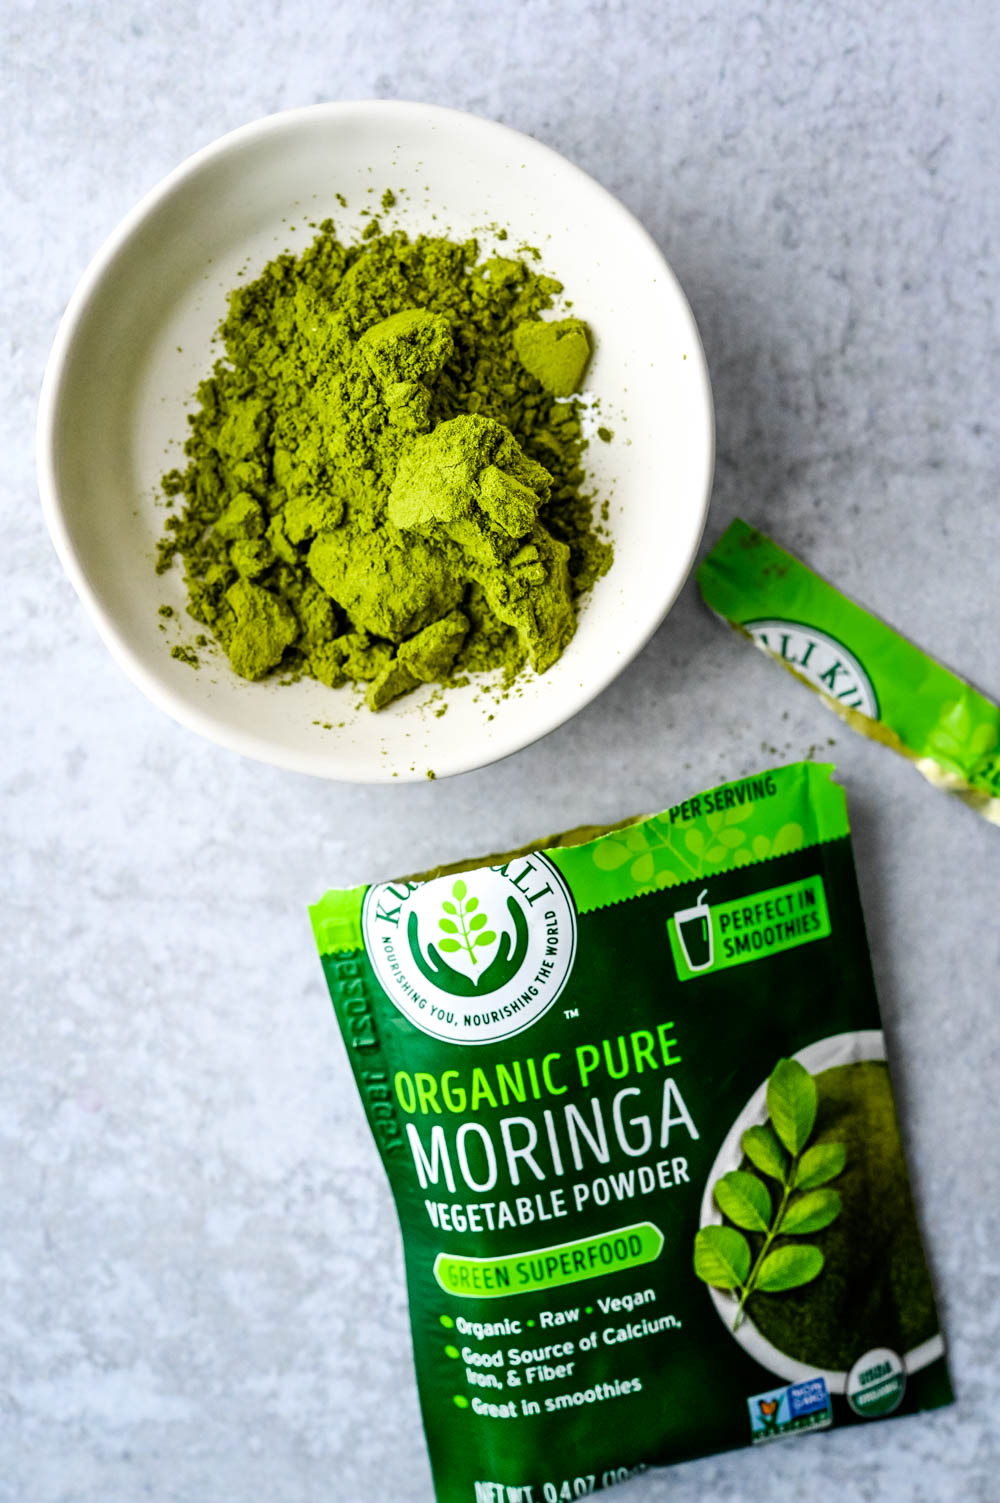 moringa powder by kuli kuli is a new food trend that's a great additive for smoothies.